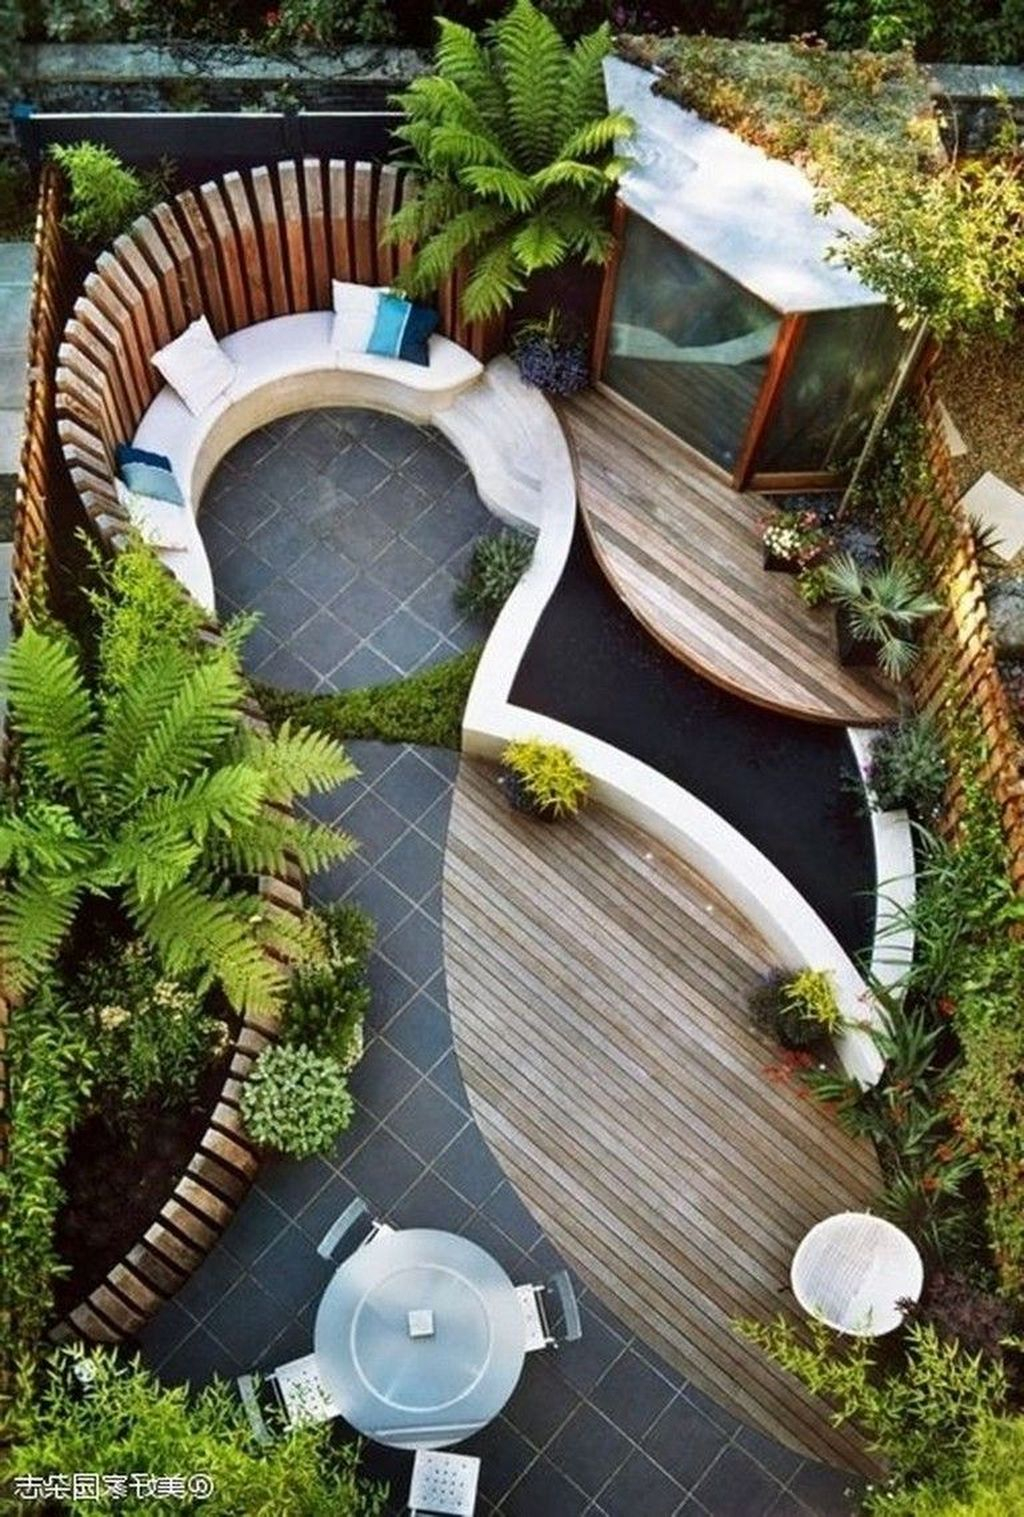 Captivating Diy Patio Gardens Ideas On A Budget To Try 17